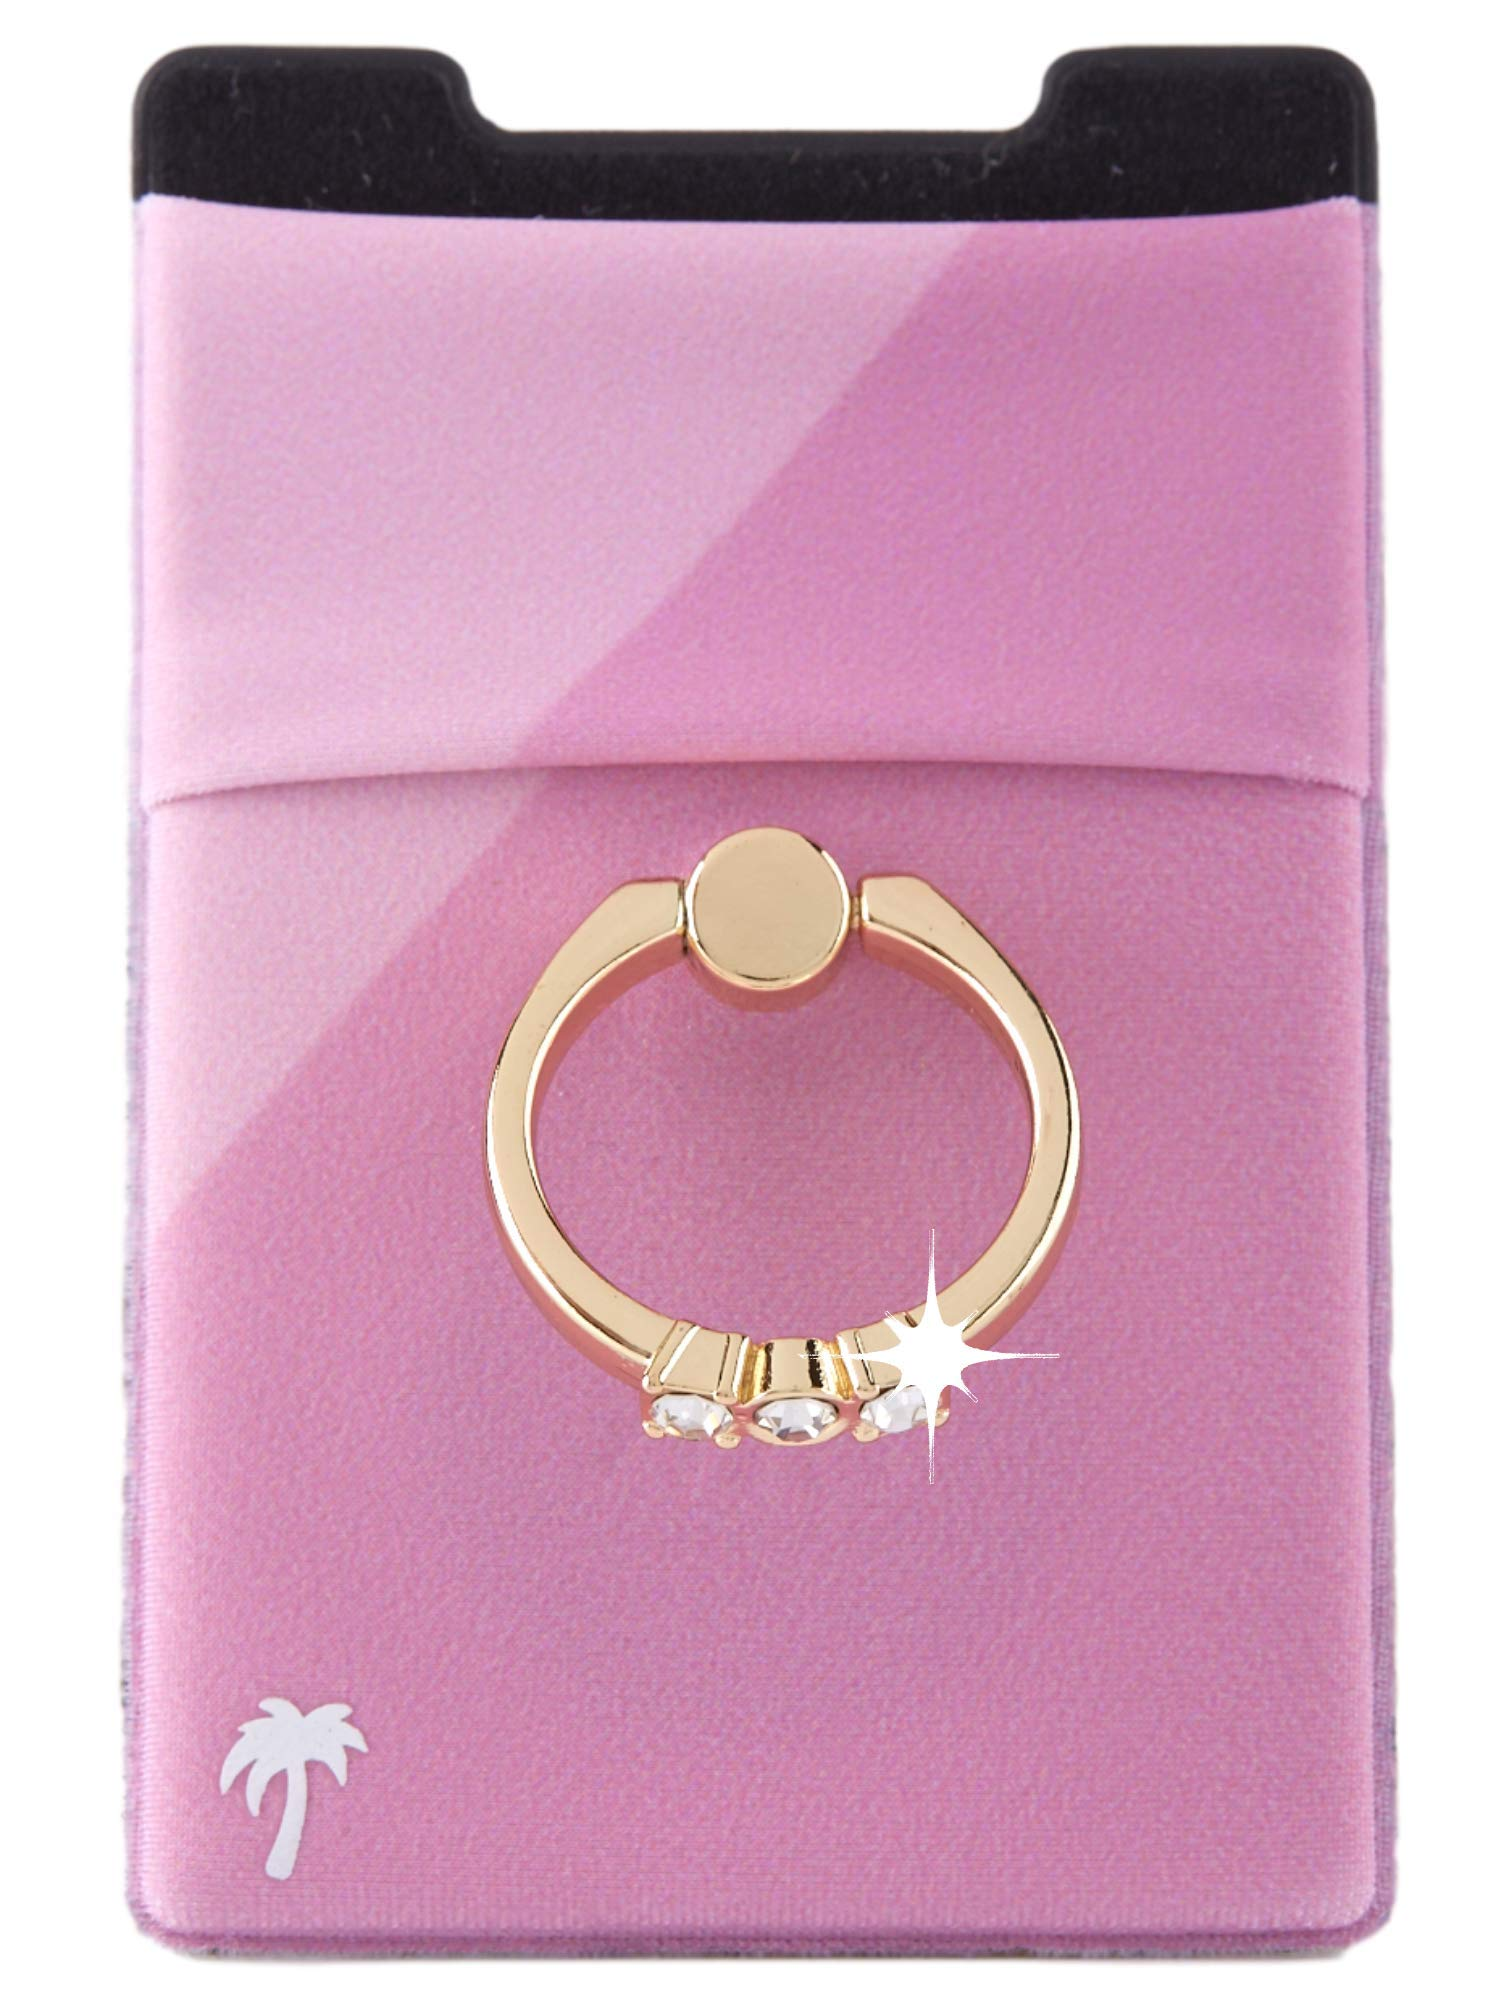 The StickyWallet +Ring –New 4-in-1 Spandex Stick-on Wallet w/ Kickstand Finger Ring – Best Card Holder Sticker for any Phone: iPhone 11 Pro Max XR XS X etc. (Rose 2-Tone w/ Gold Diamond Ring)